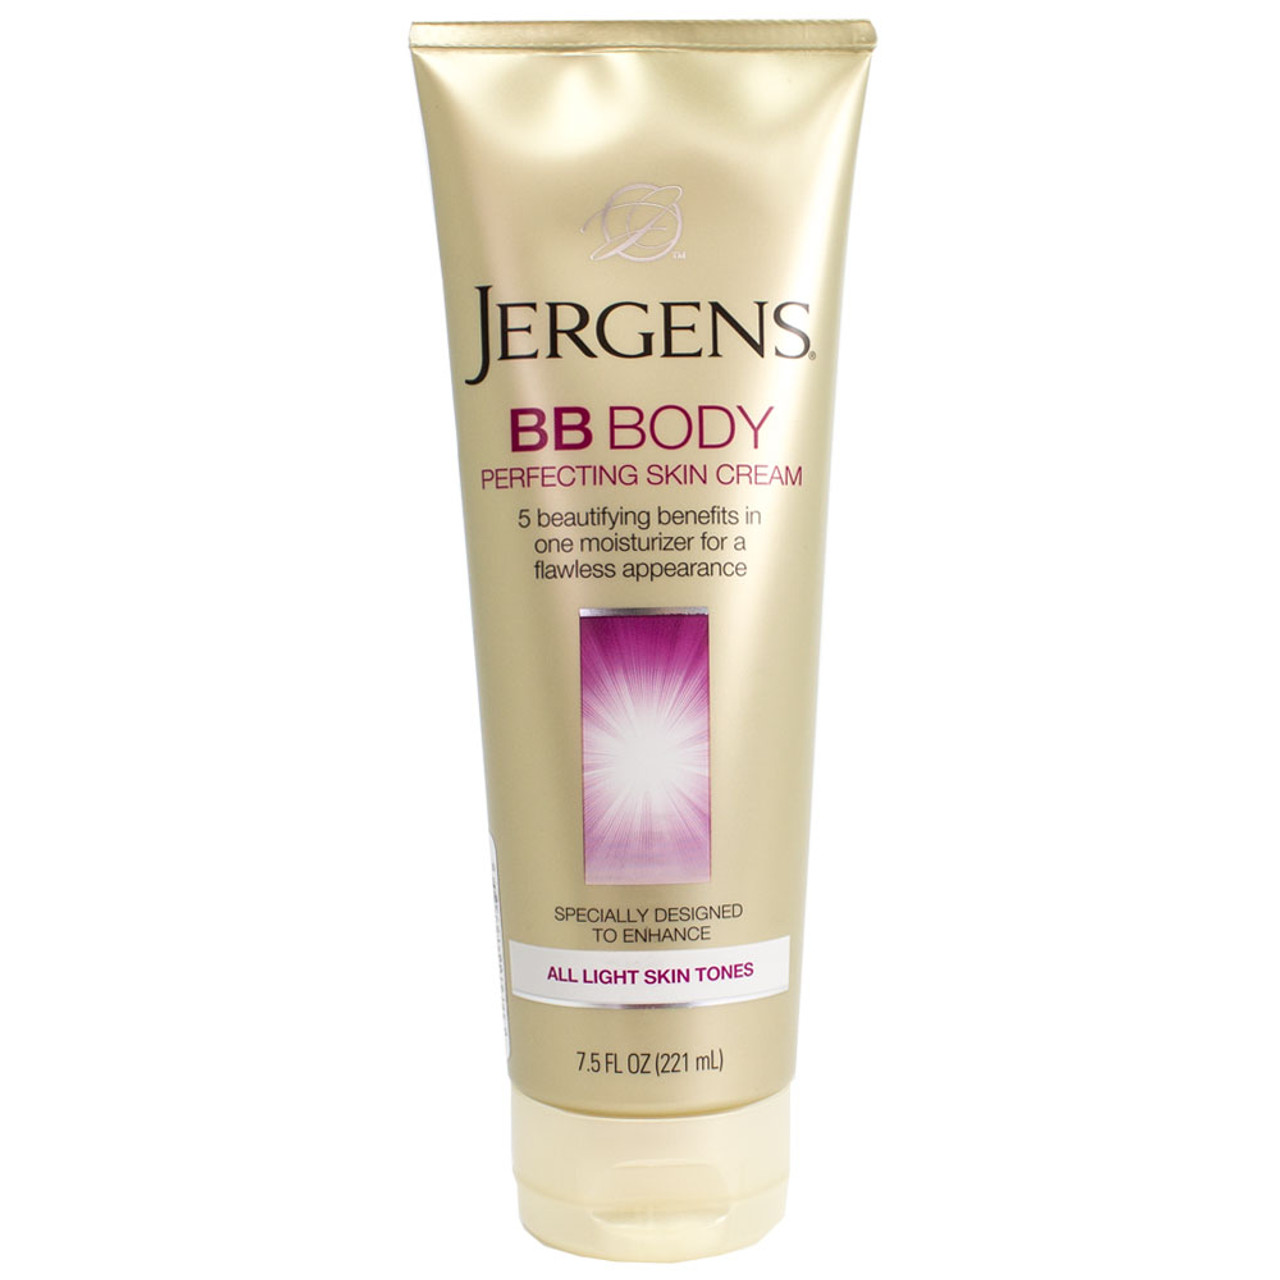 jergens bb body perfecting skin cream for all light skin tones 7 5